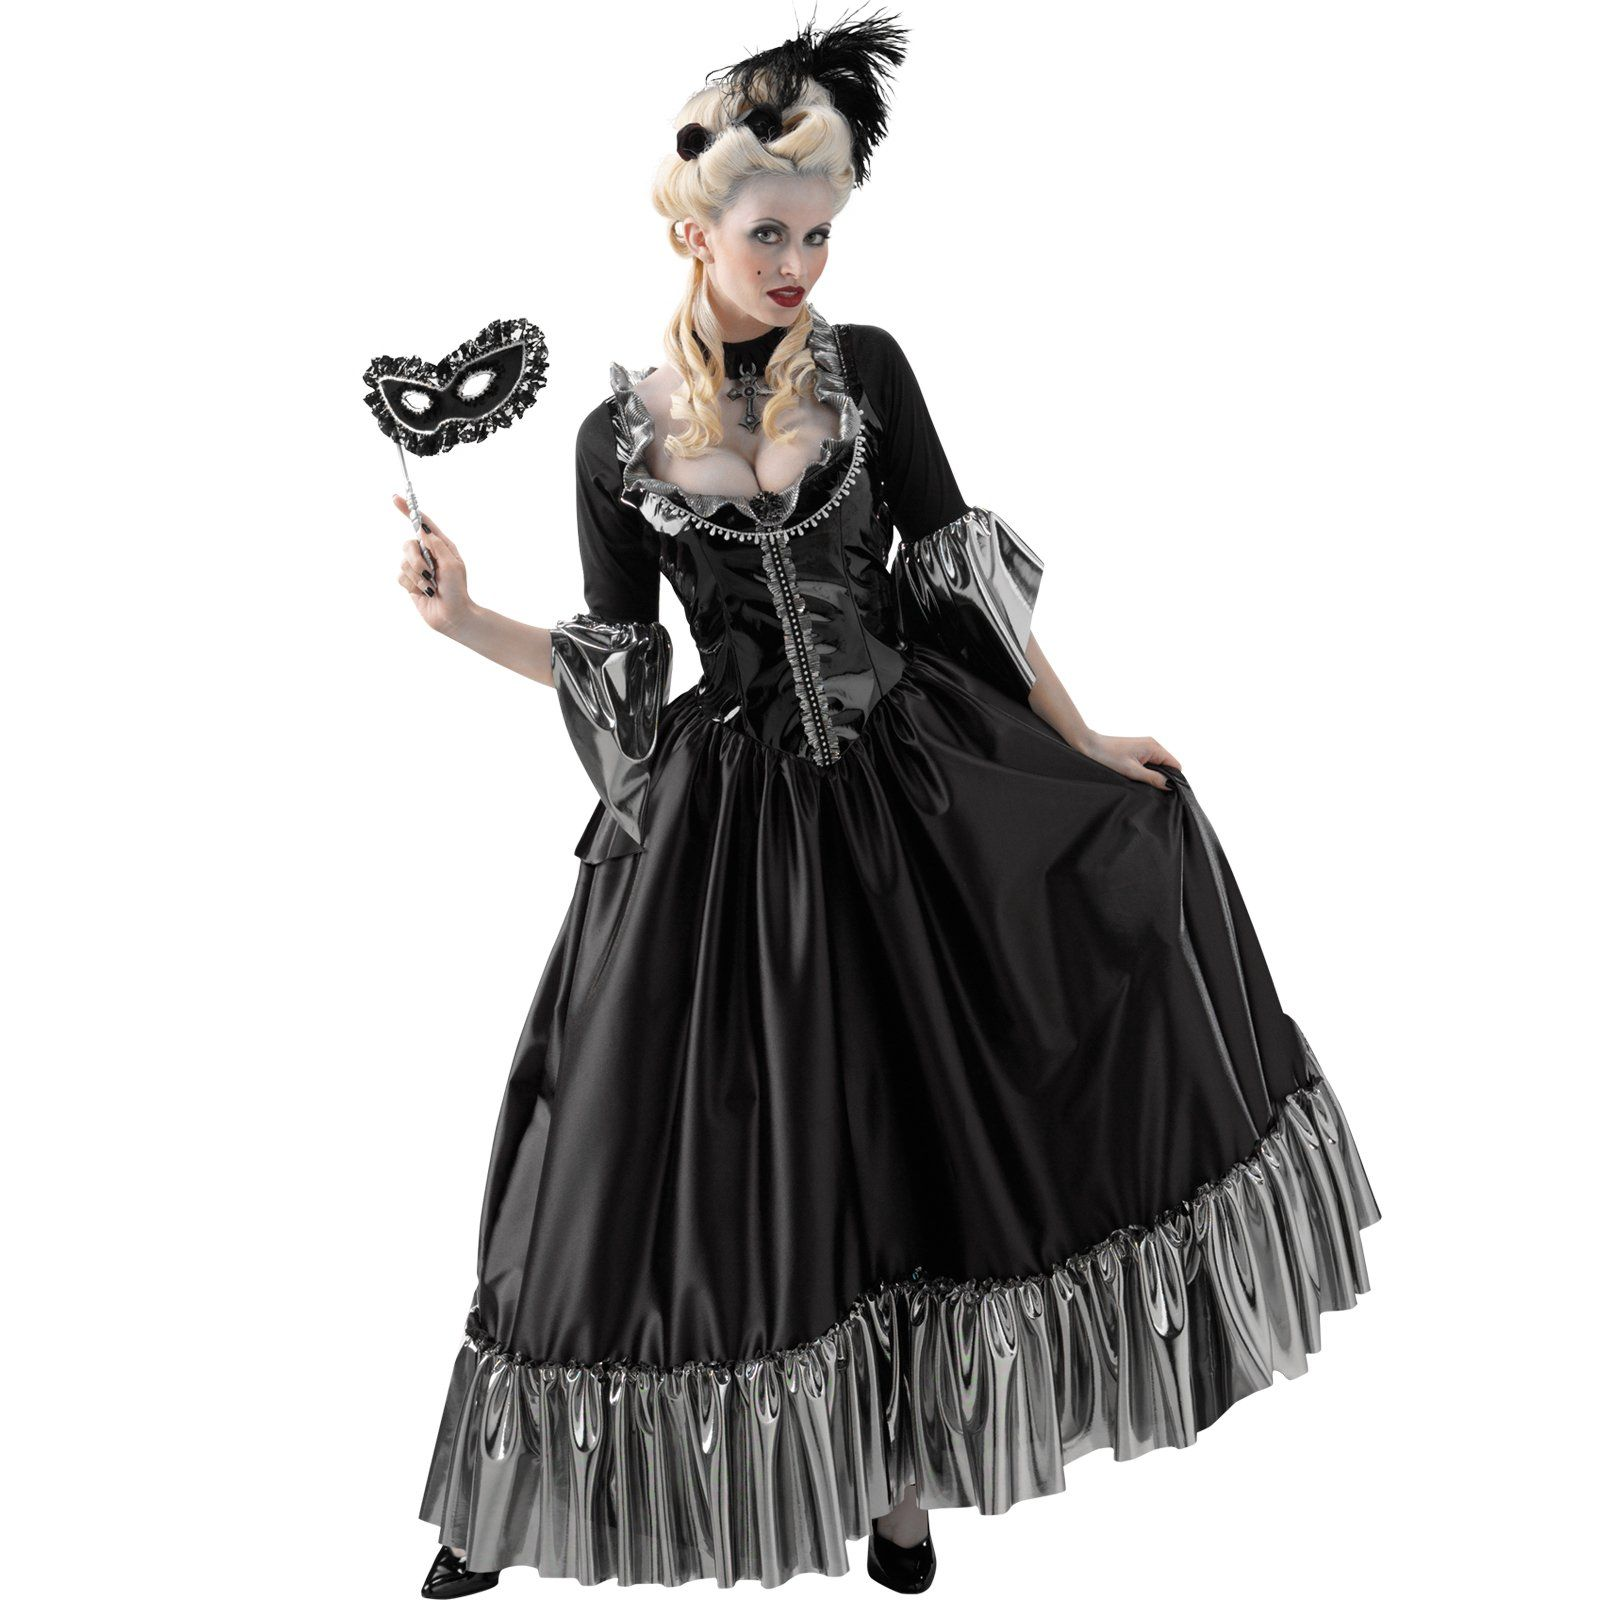 Dress up for masquerade party - Masquerade Ball Queen Adult Costume From Buycostumes Com